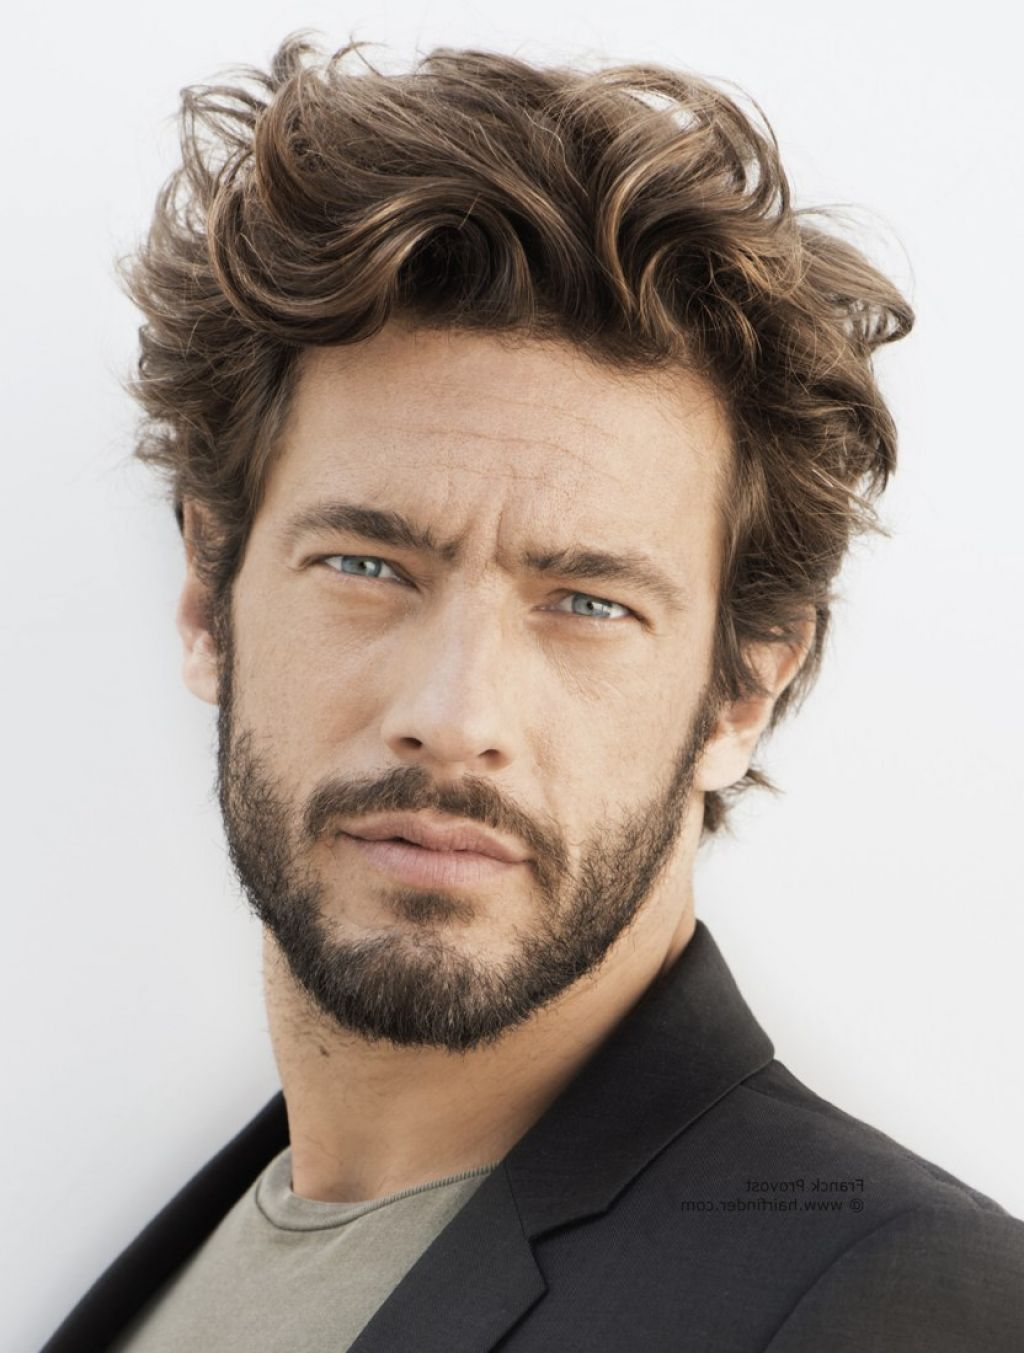 Beard Styles For Men With Curly Hair Wavy Hair Men Curly Hair Men Mens Hairstyles Thick Hair